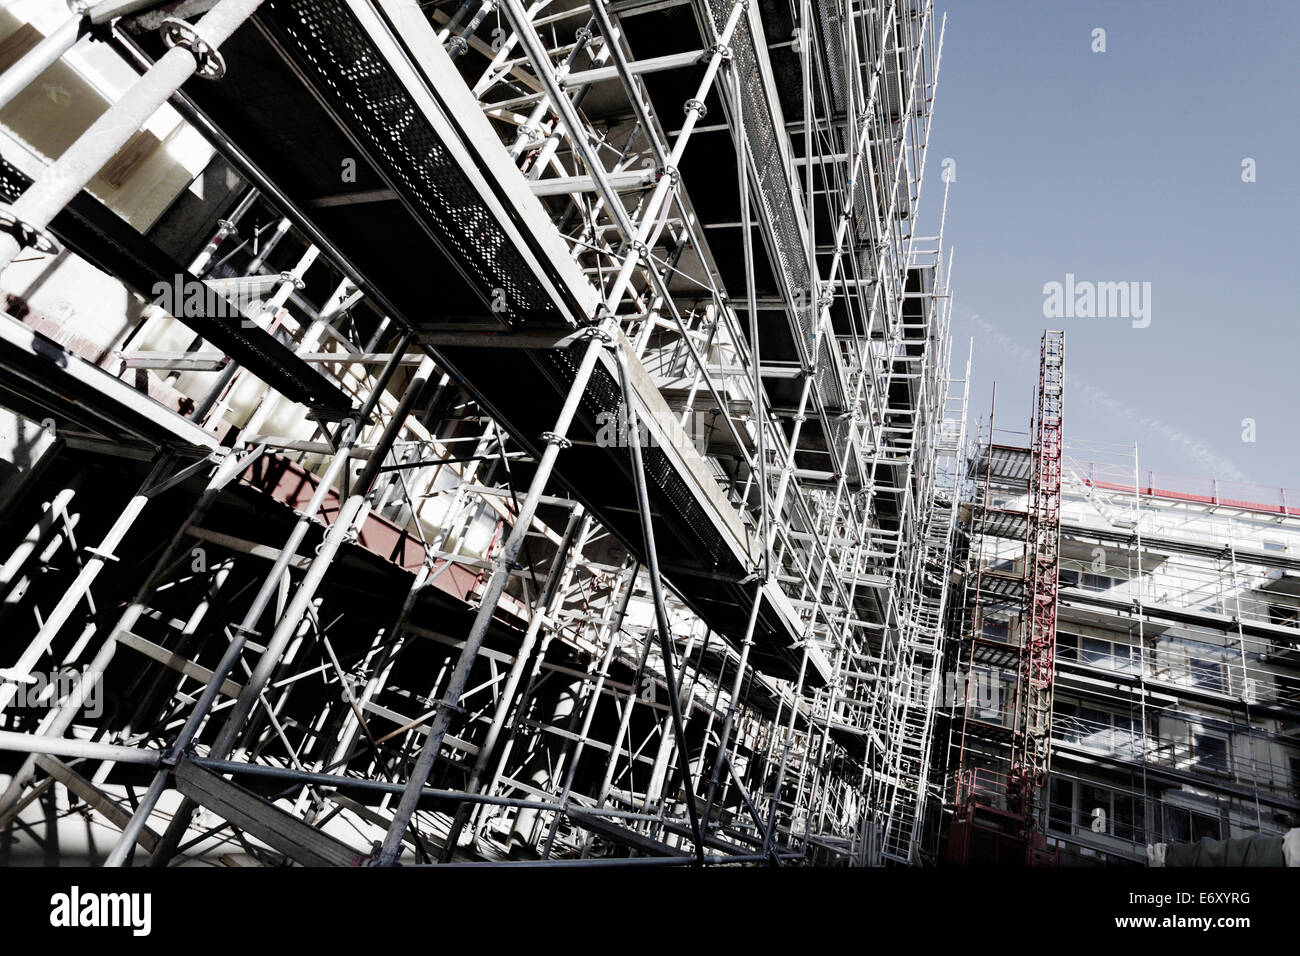 giant scaffolding constructions - Stock Image